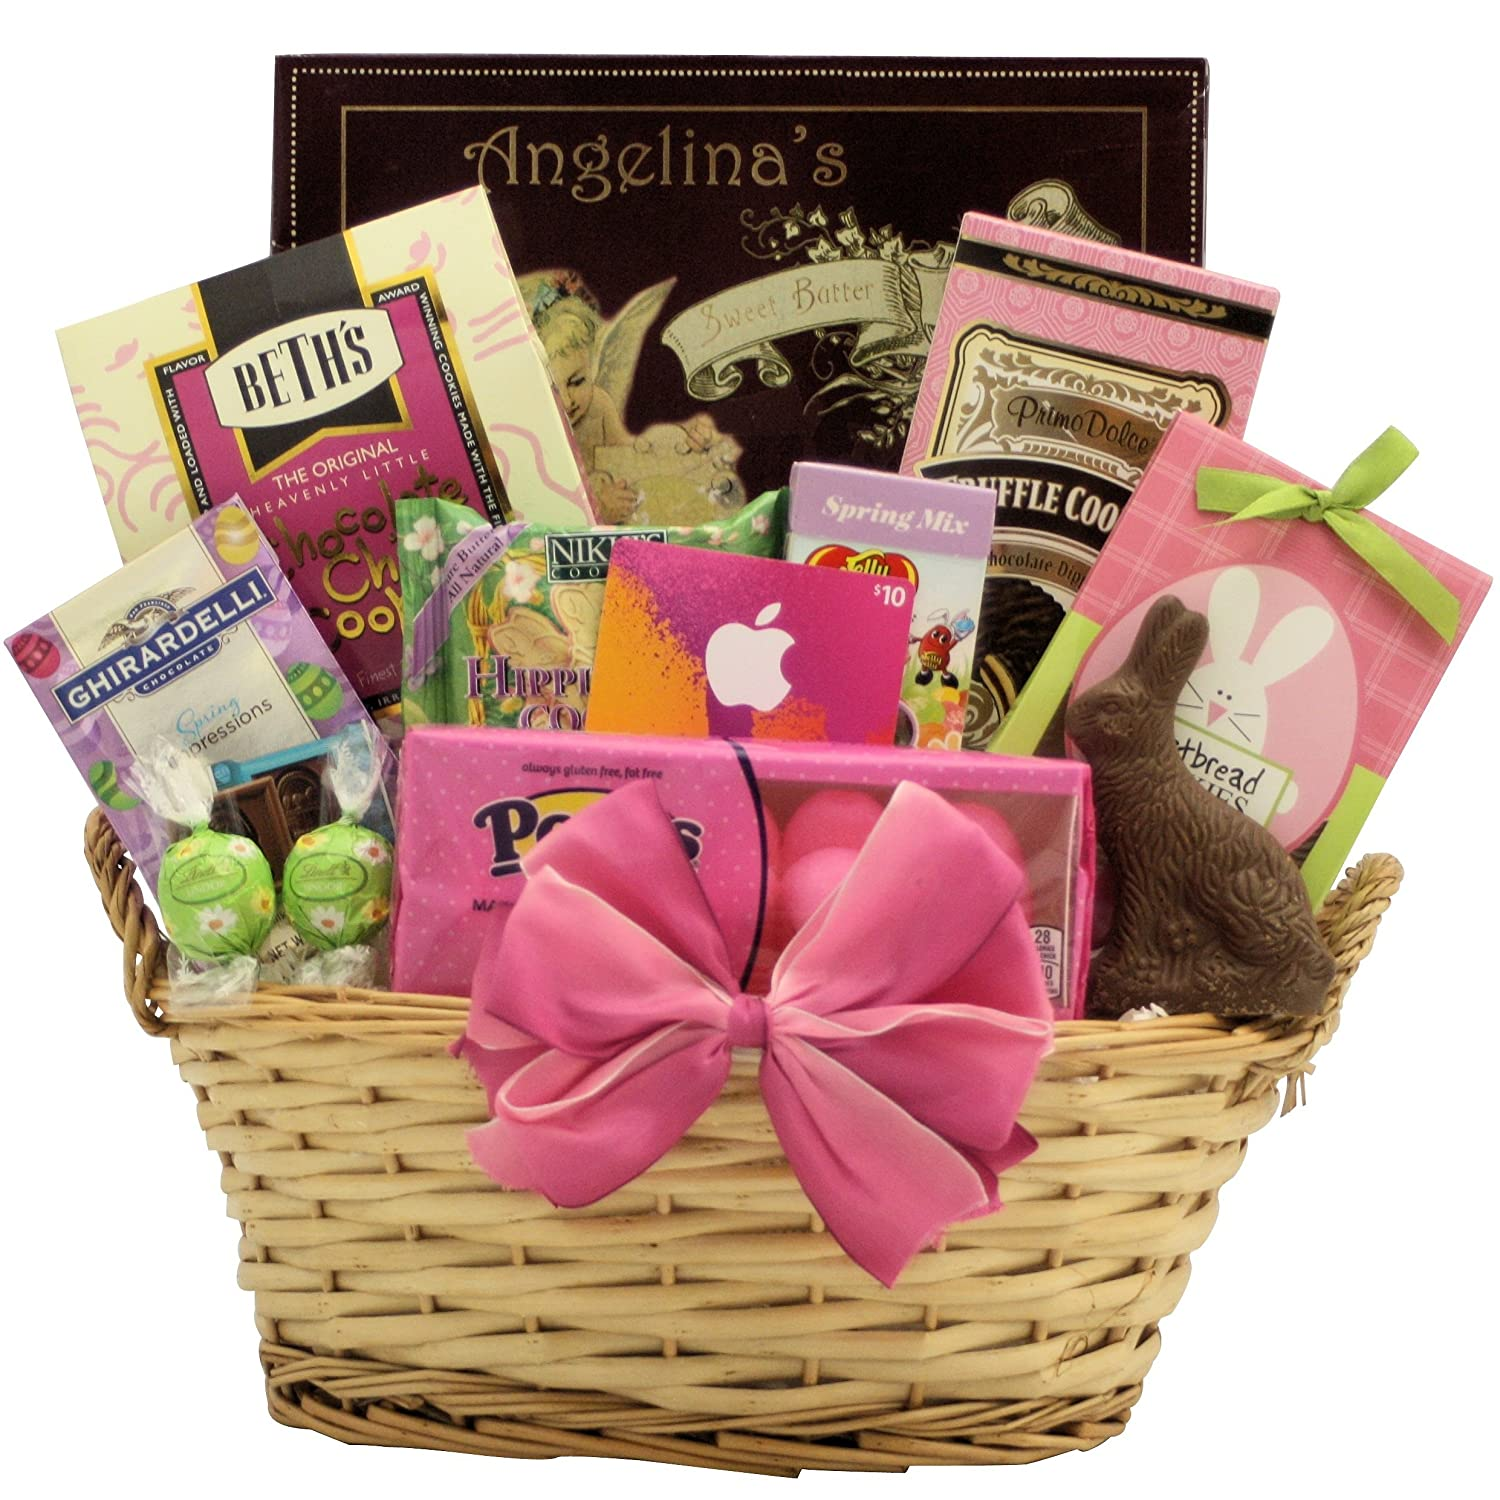 Amazon.com  GreatArrivals Gift Baskets Itunes Cool Easter Treats Teen and Tween Easter  Grocery u0026 Gourmet Food  sc 1 st  Amazon.com & Amazon.com : GreatArrivals Gift Baskets Itunes Cool Easter Treats ...